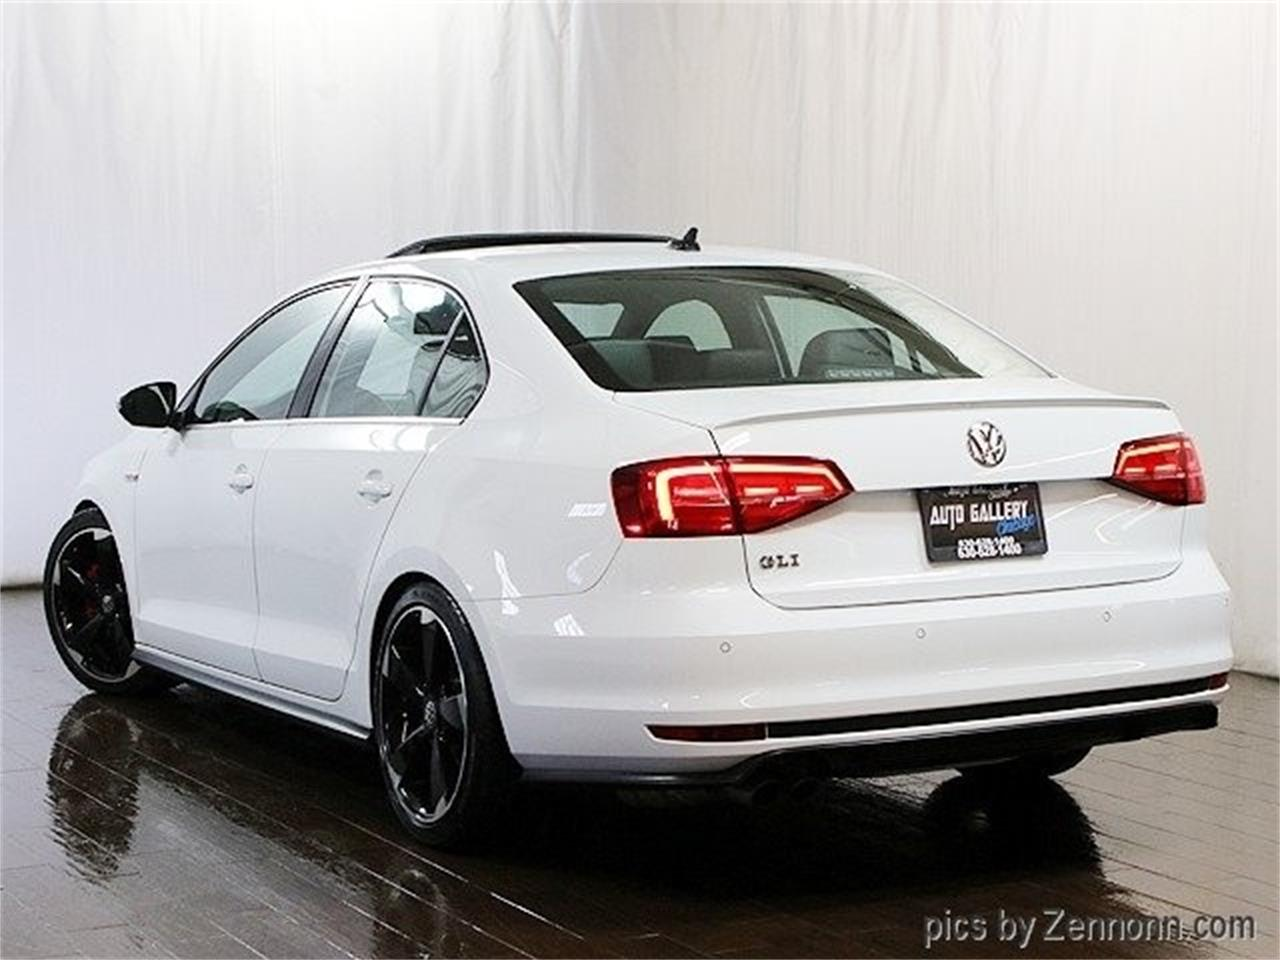 Large Picture of 2016 Jetta located in Illinois - $16,990.00 - PNNN